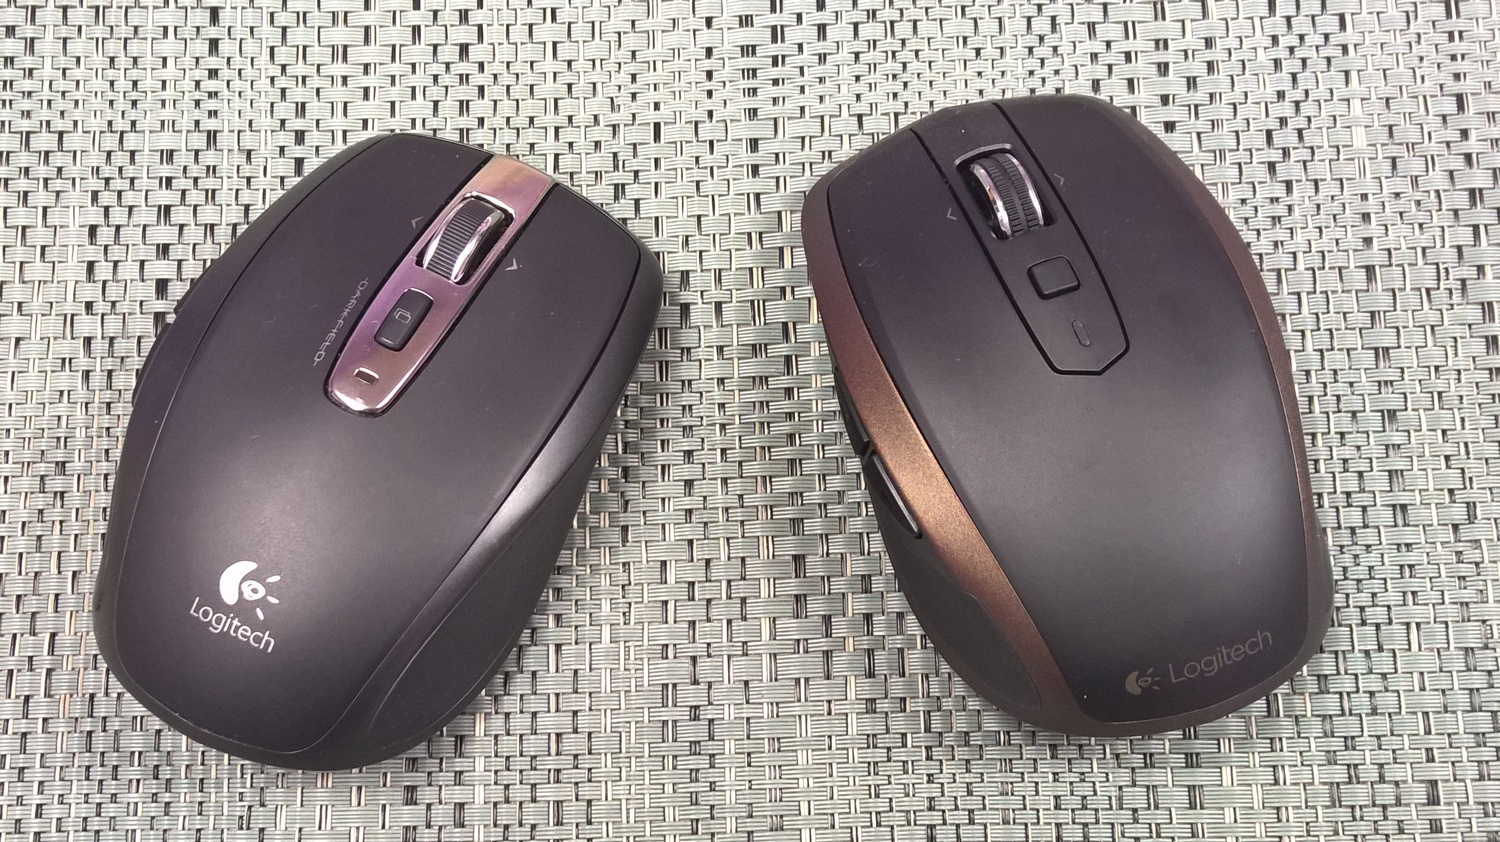 7dc9a1faf1a The Logitech MX Anywhere 2 Mouse: Portable Performance